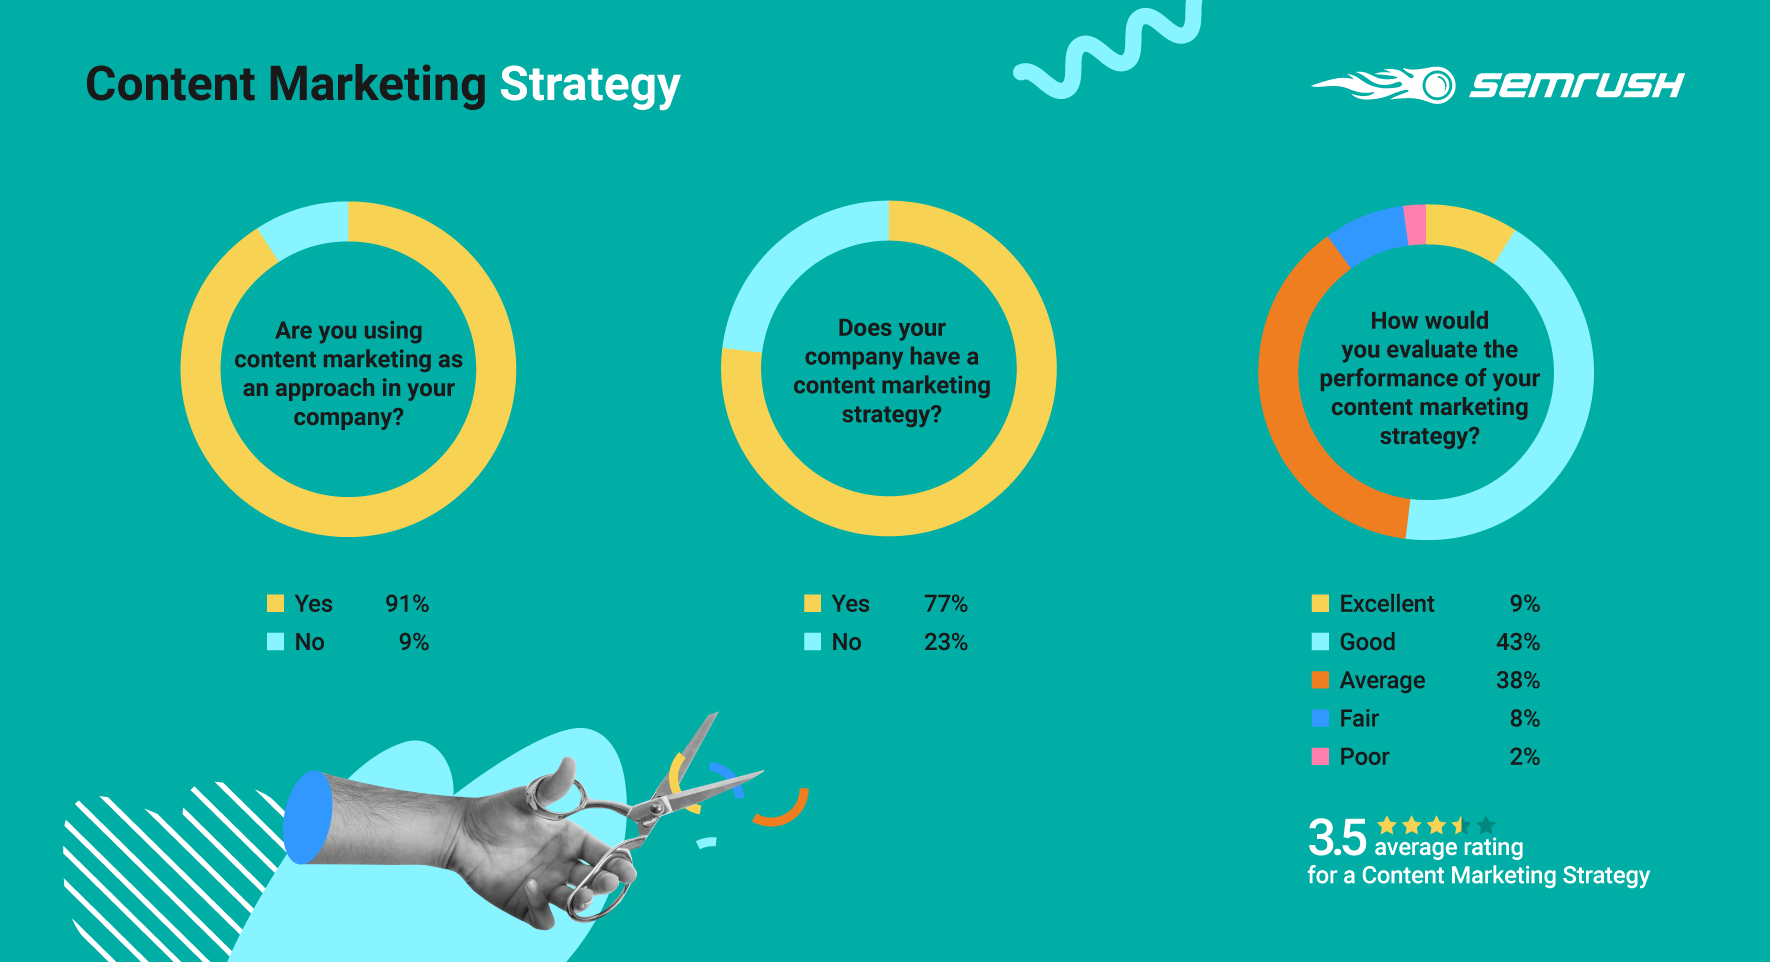 Content Marketing stats from survey